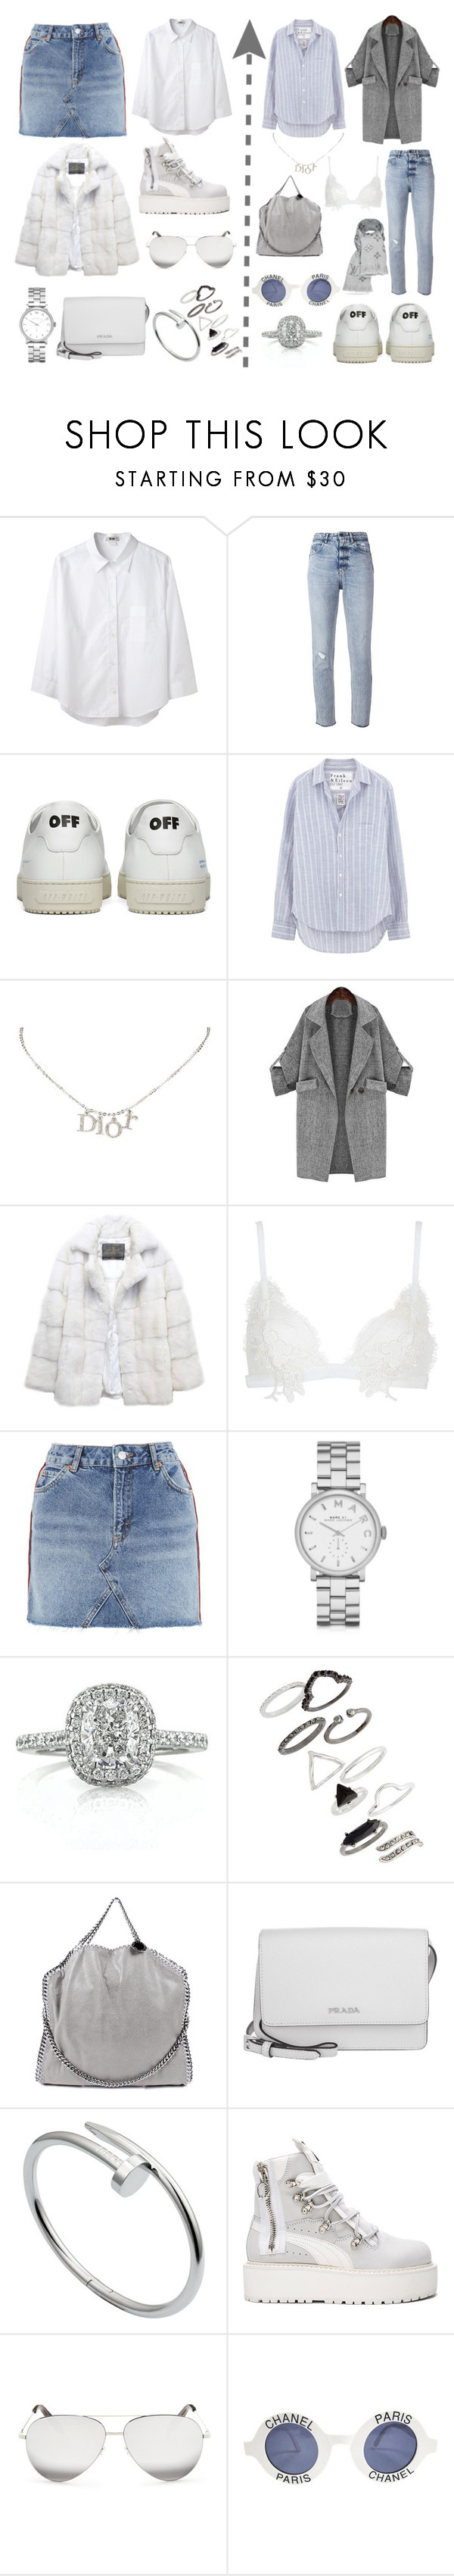 """b a d. a n g e l"" by ccccroy on Polyvore featuring Mode, Acne Studios, Golden Goose, Off-White, Frank & Eileen, Christian Dior, Lilly e Violetta, For Love & Lemons, Topshop und Marc by Marc Jacobs"